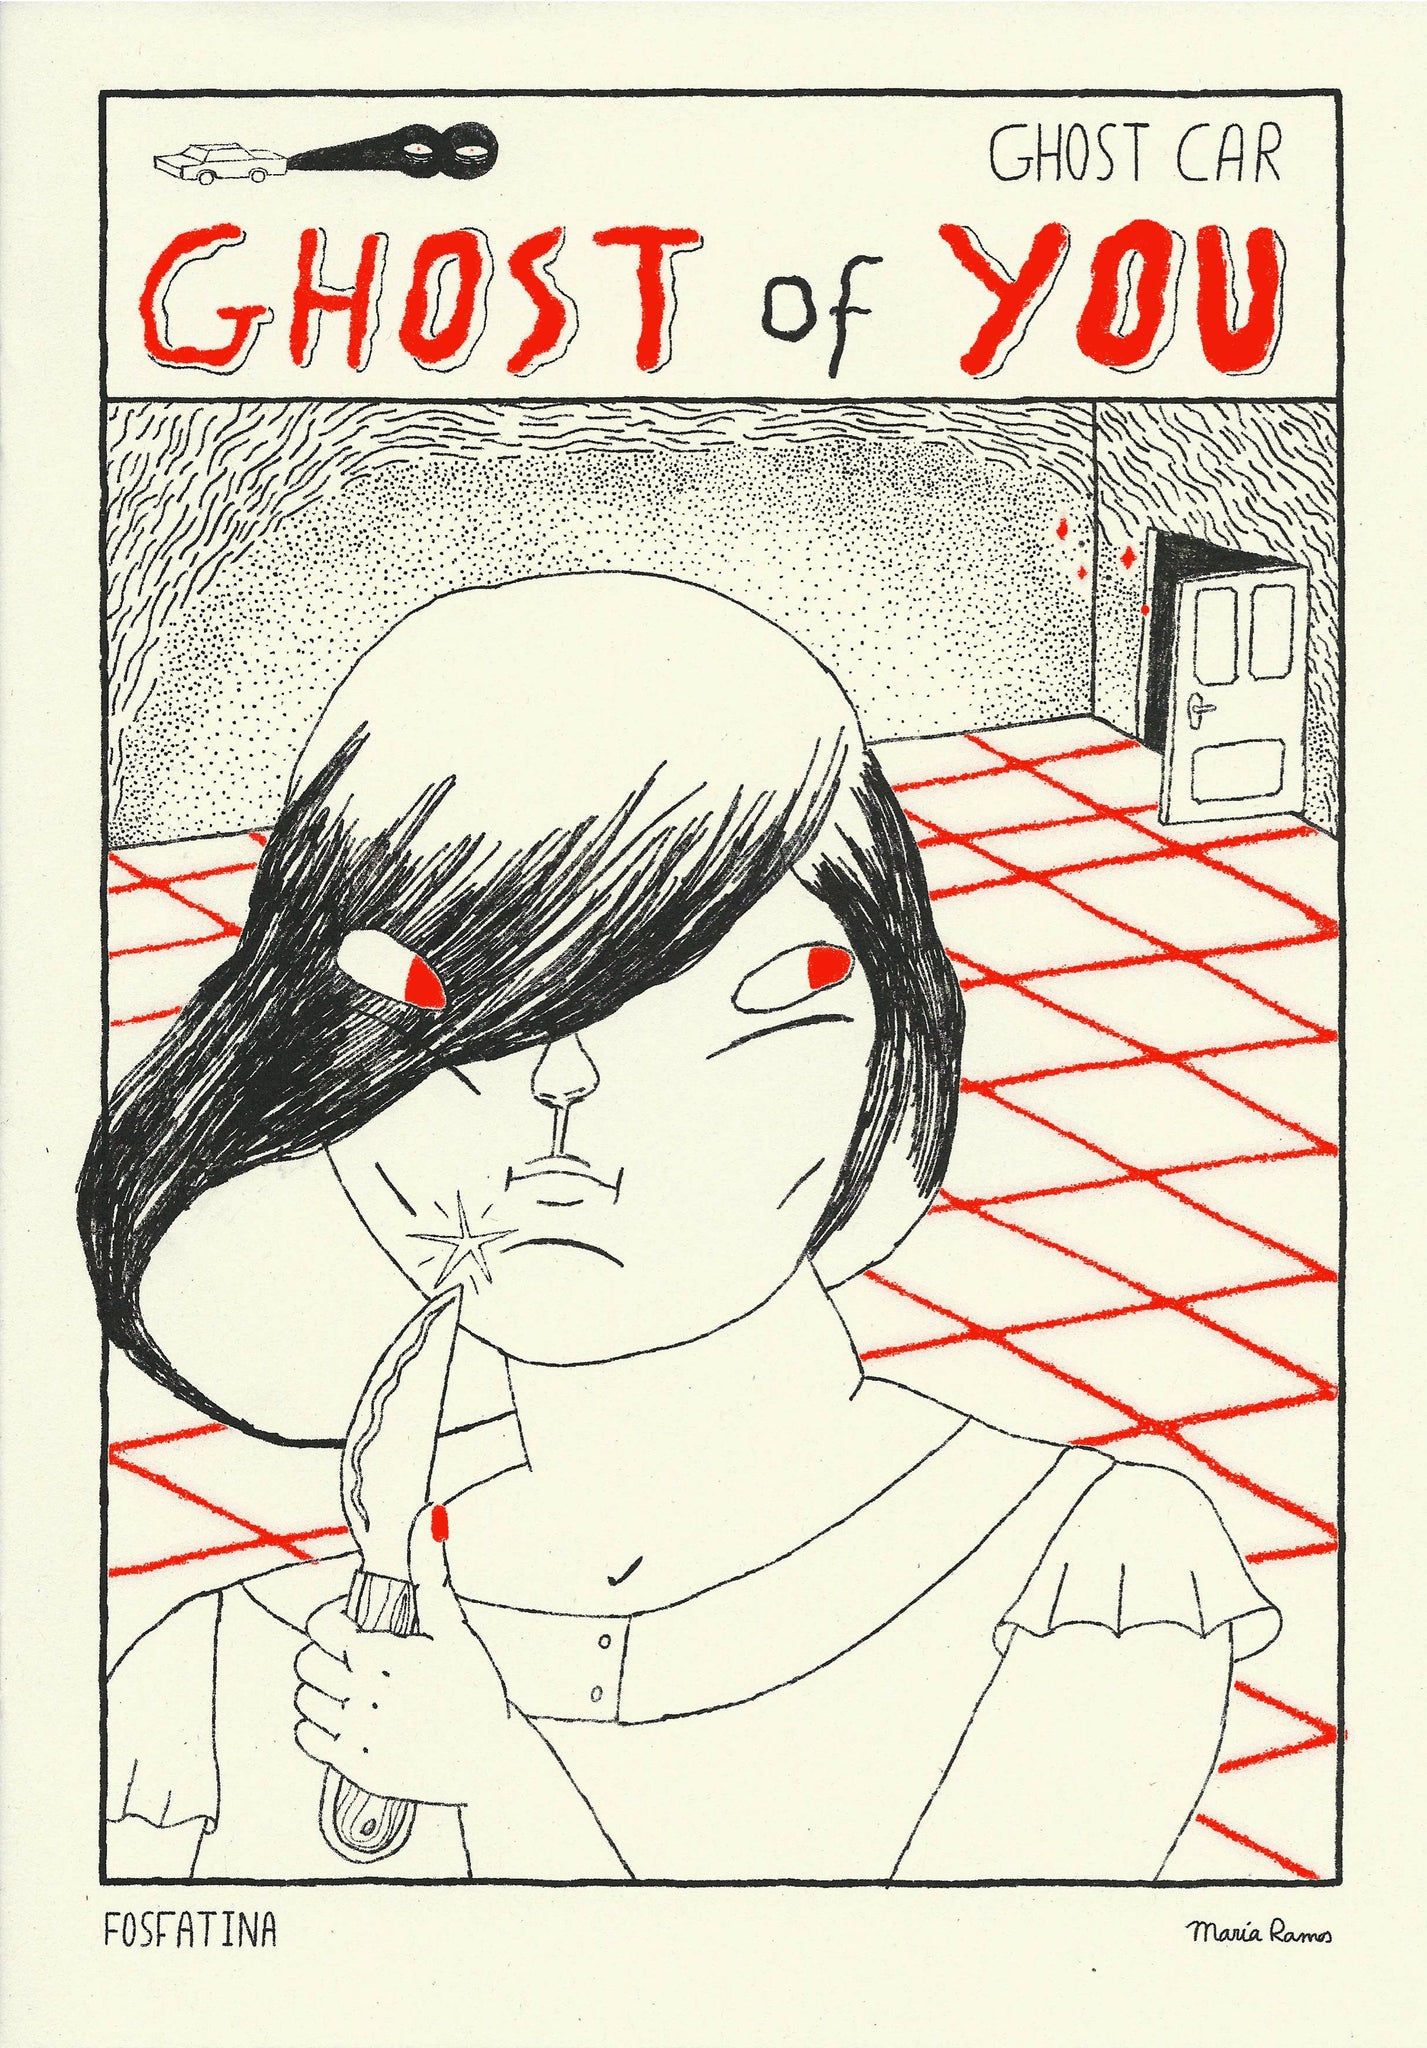 GHOST OF YOU - FOSFATINA 2000